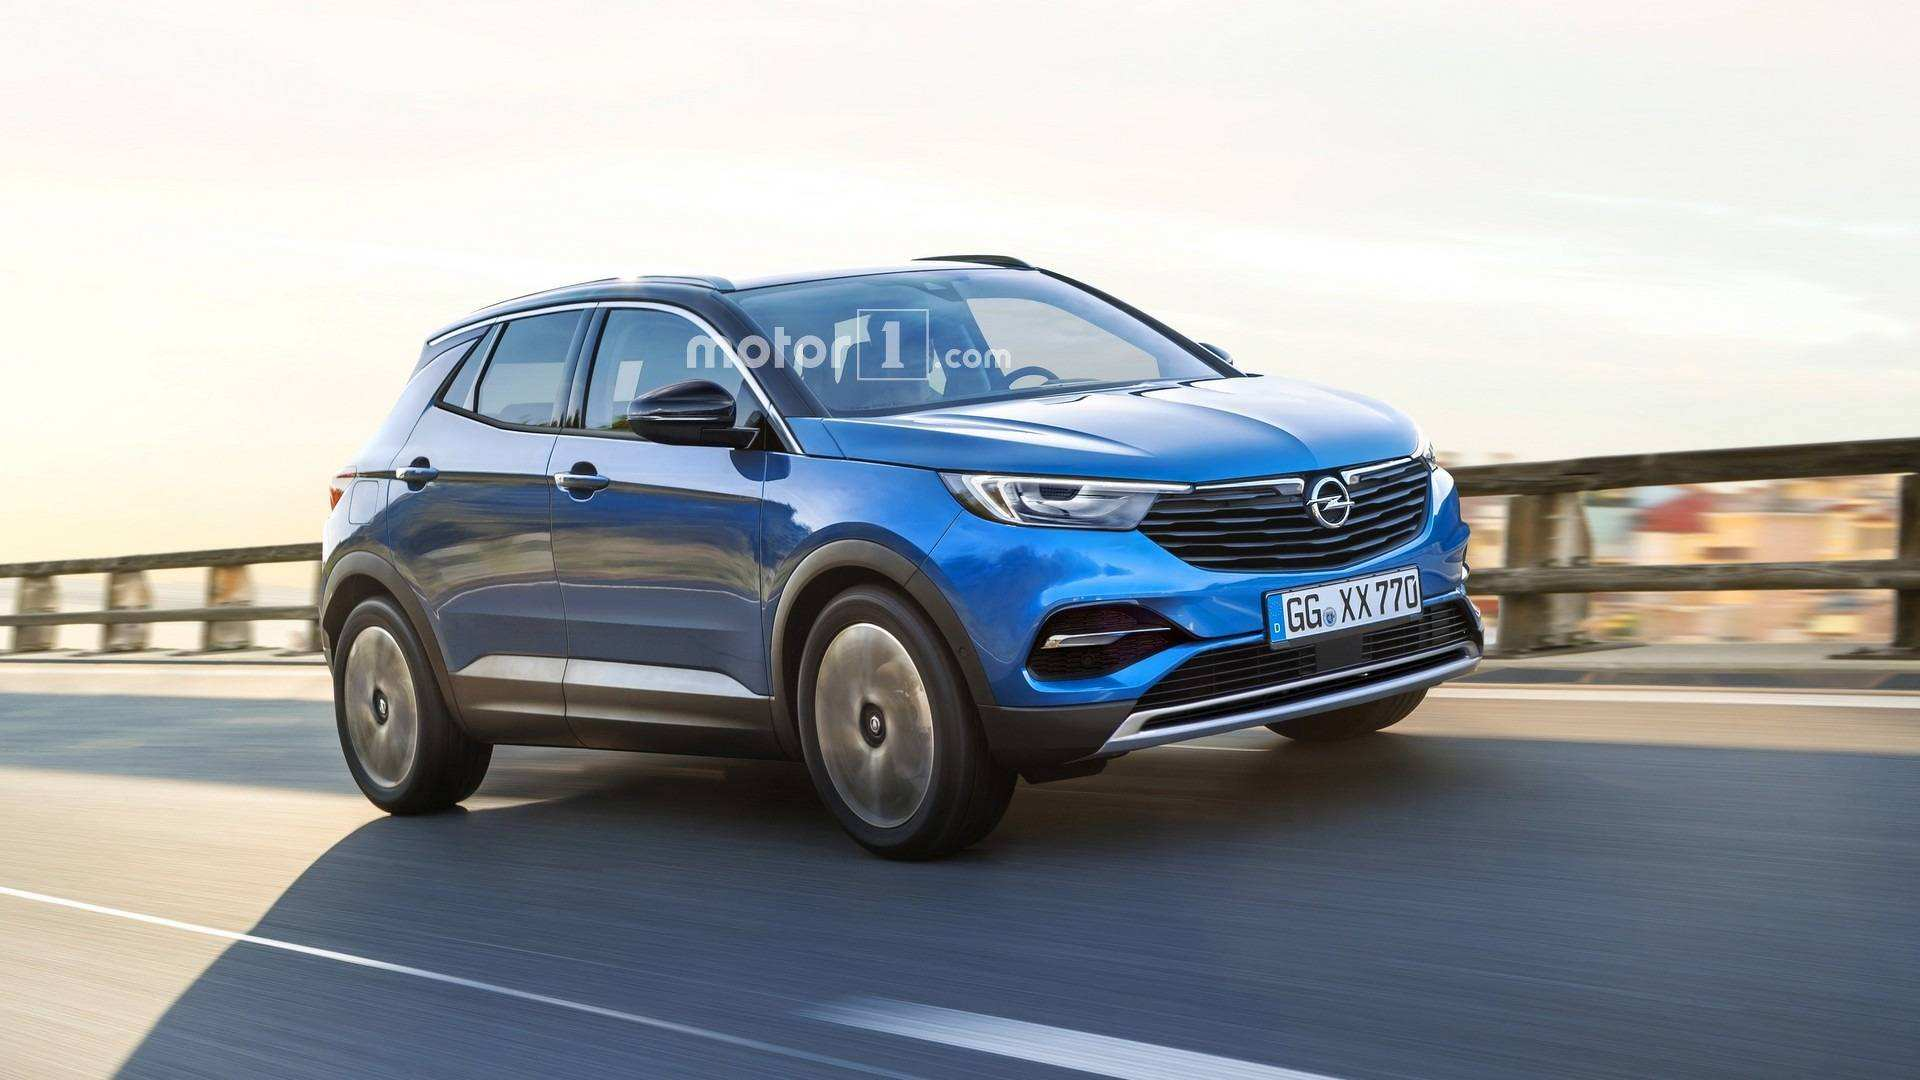 91 All New Suv Opel 2020 Specs with Suv Opel 2020